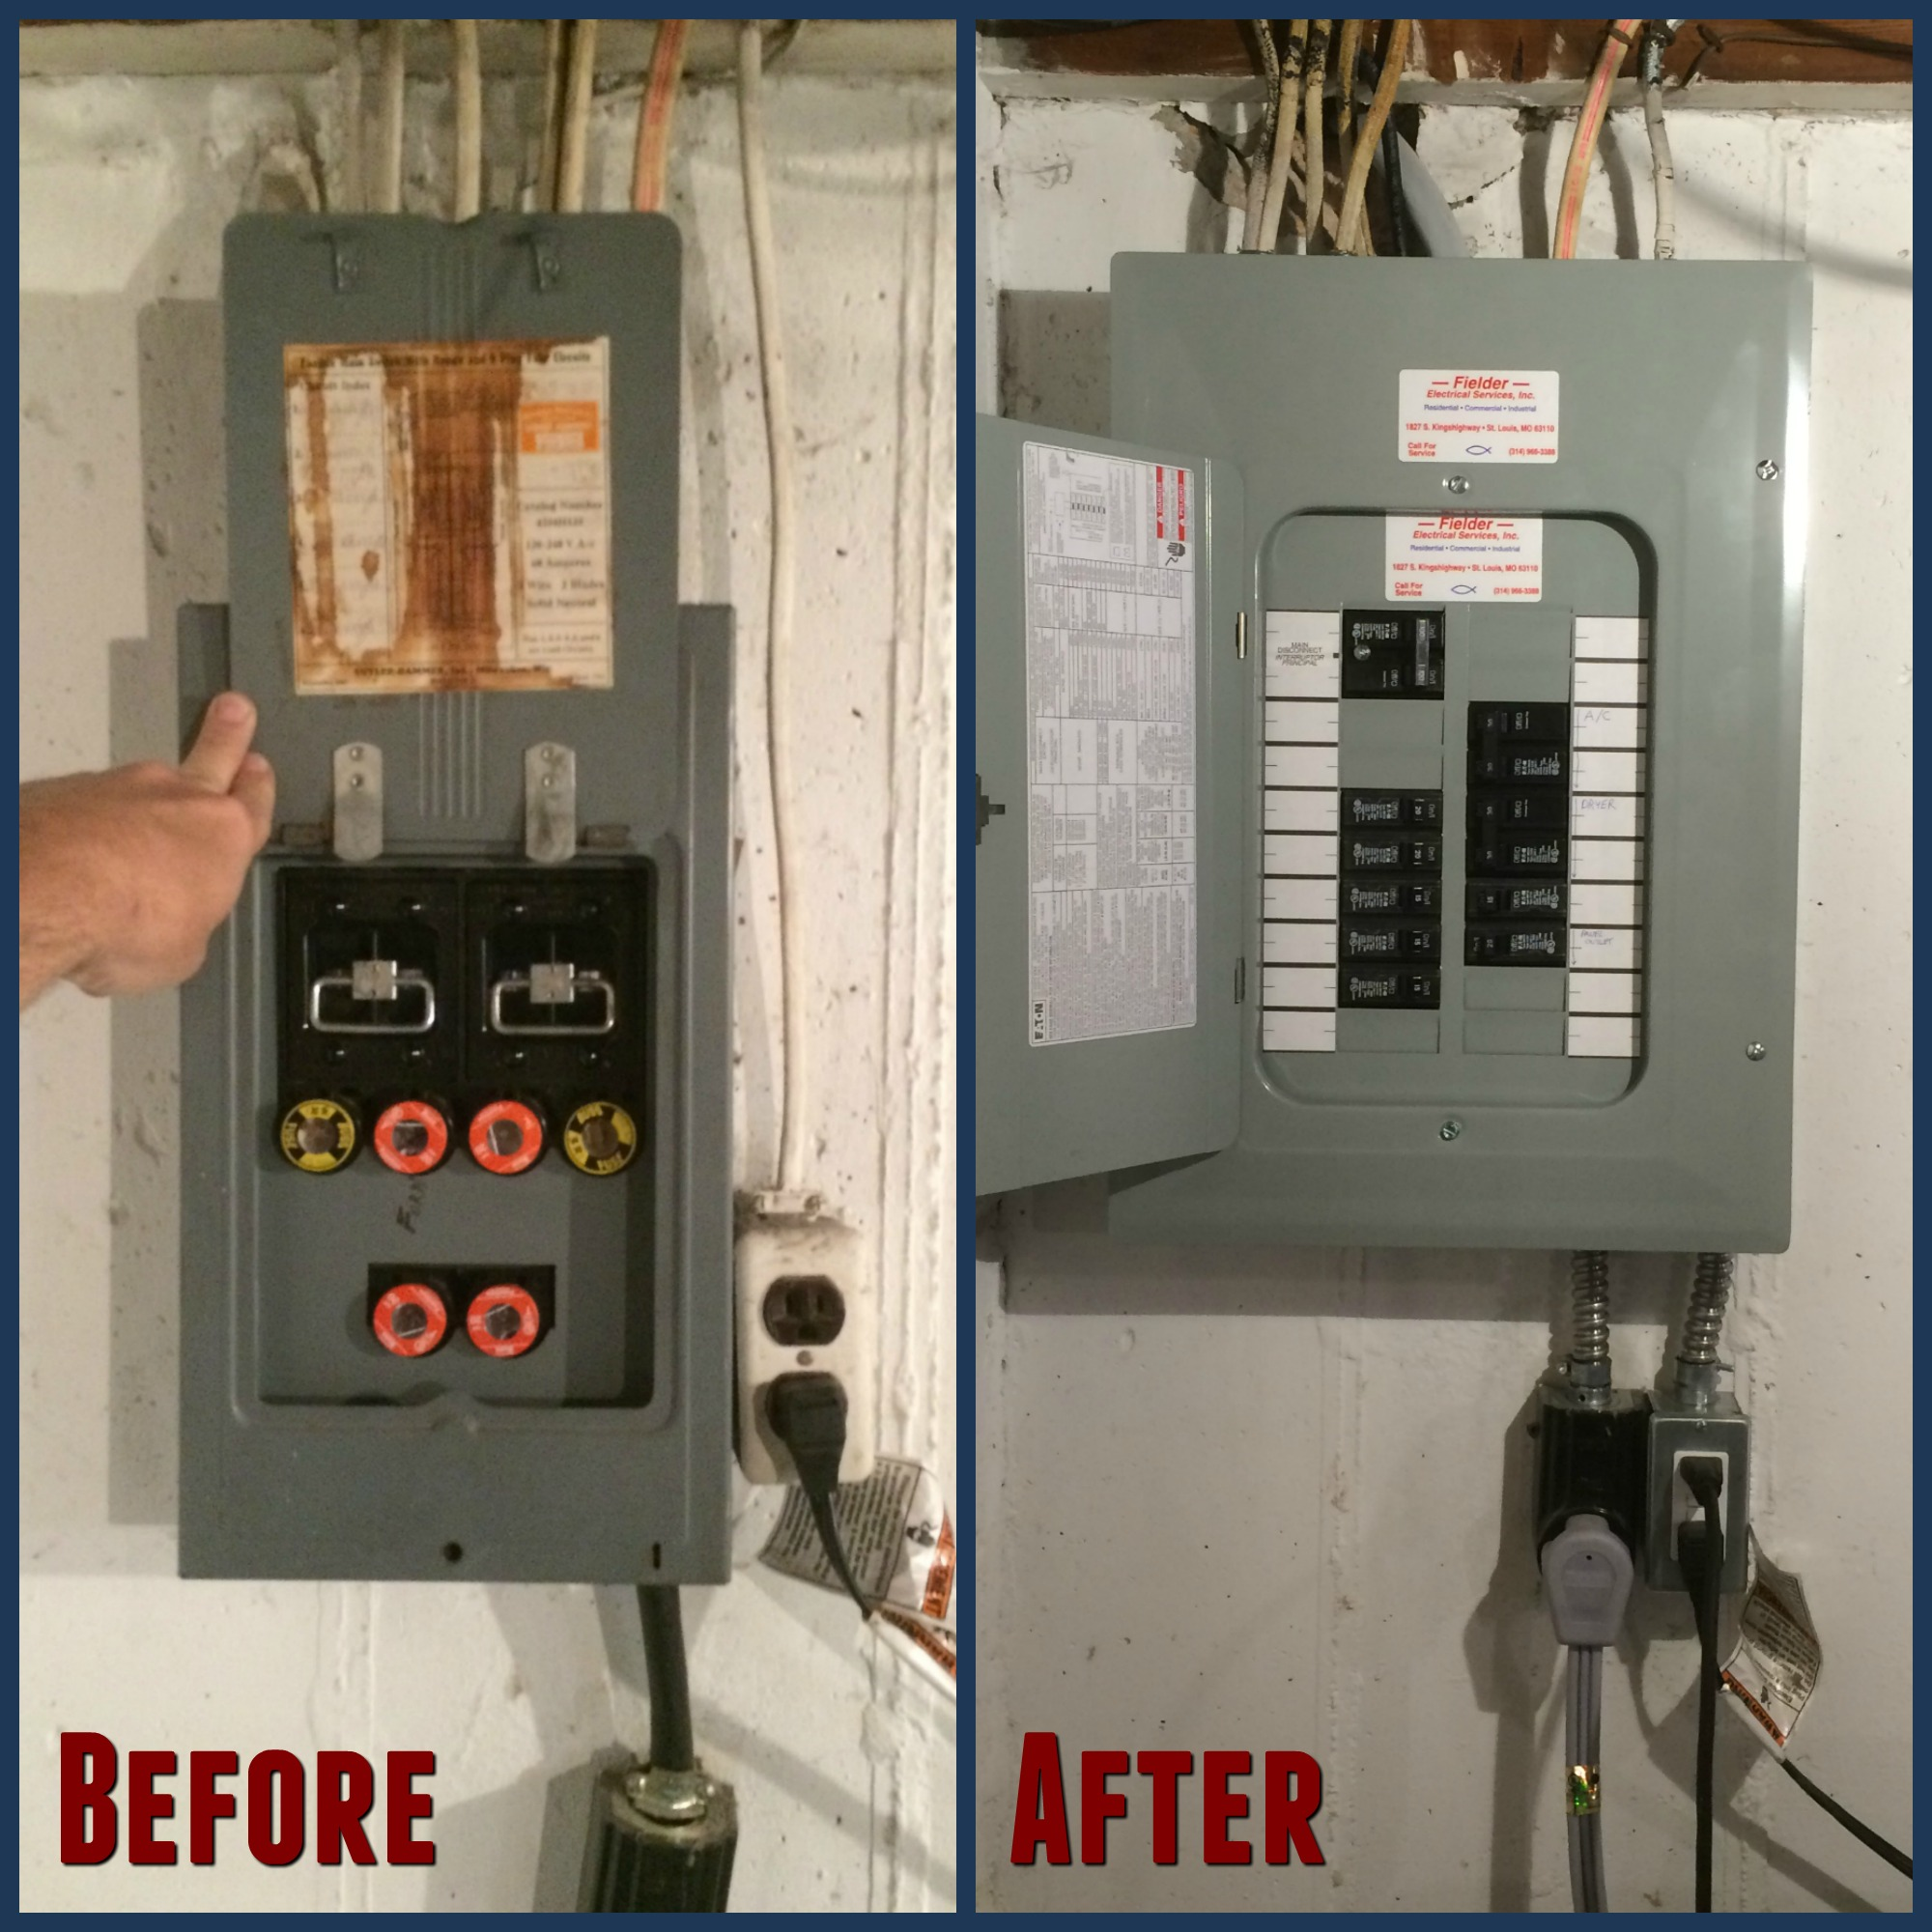 Fuse box replaced with electrical panel electrical panels fielder electrical services fuse box fuses at readyjetset.co